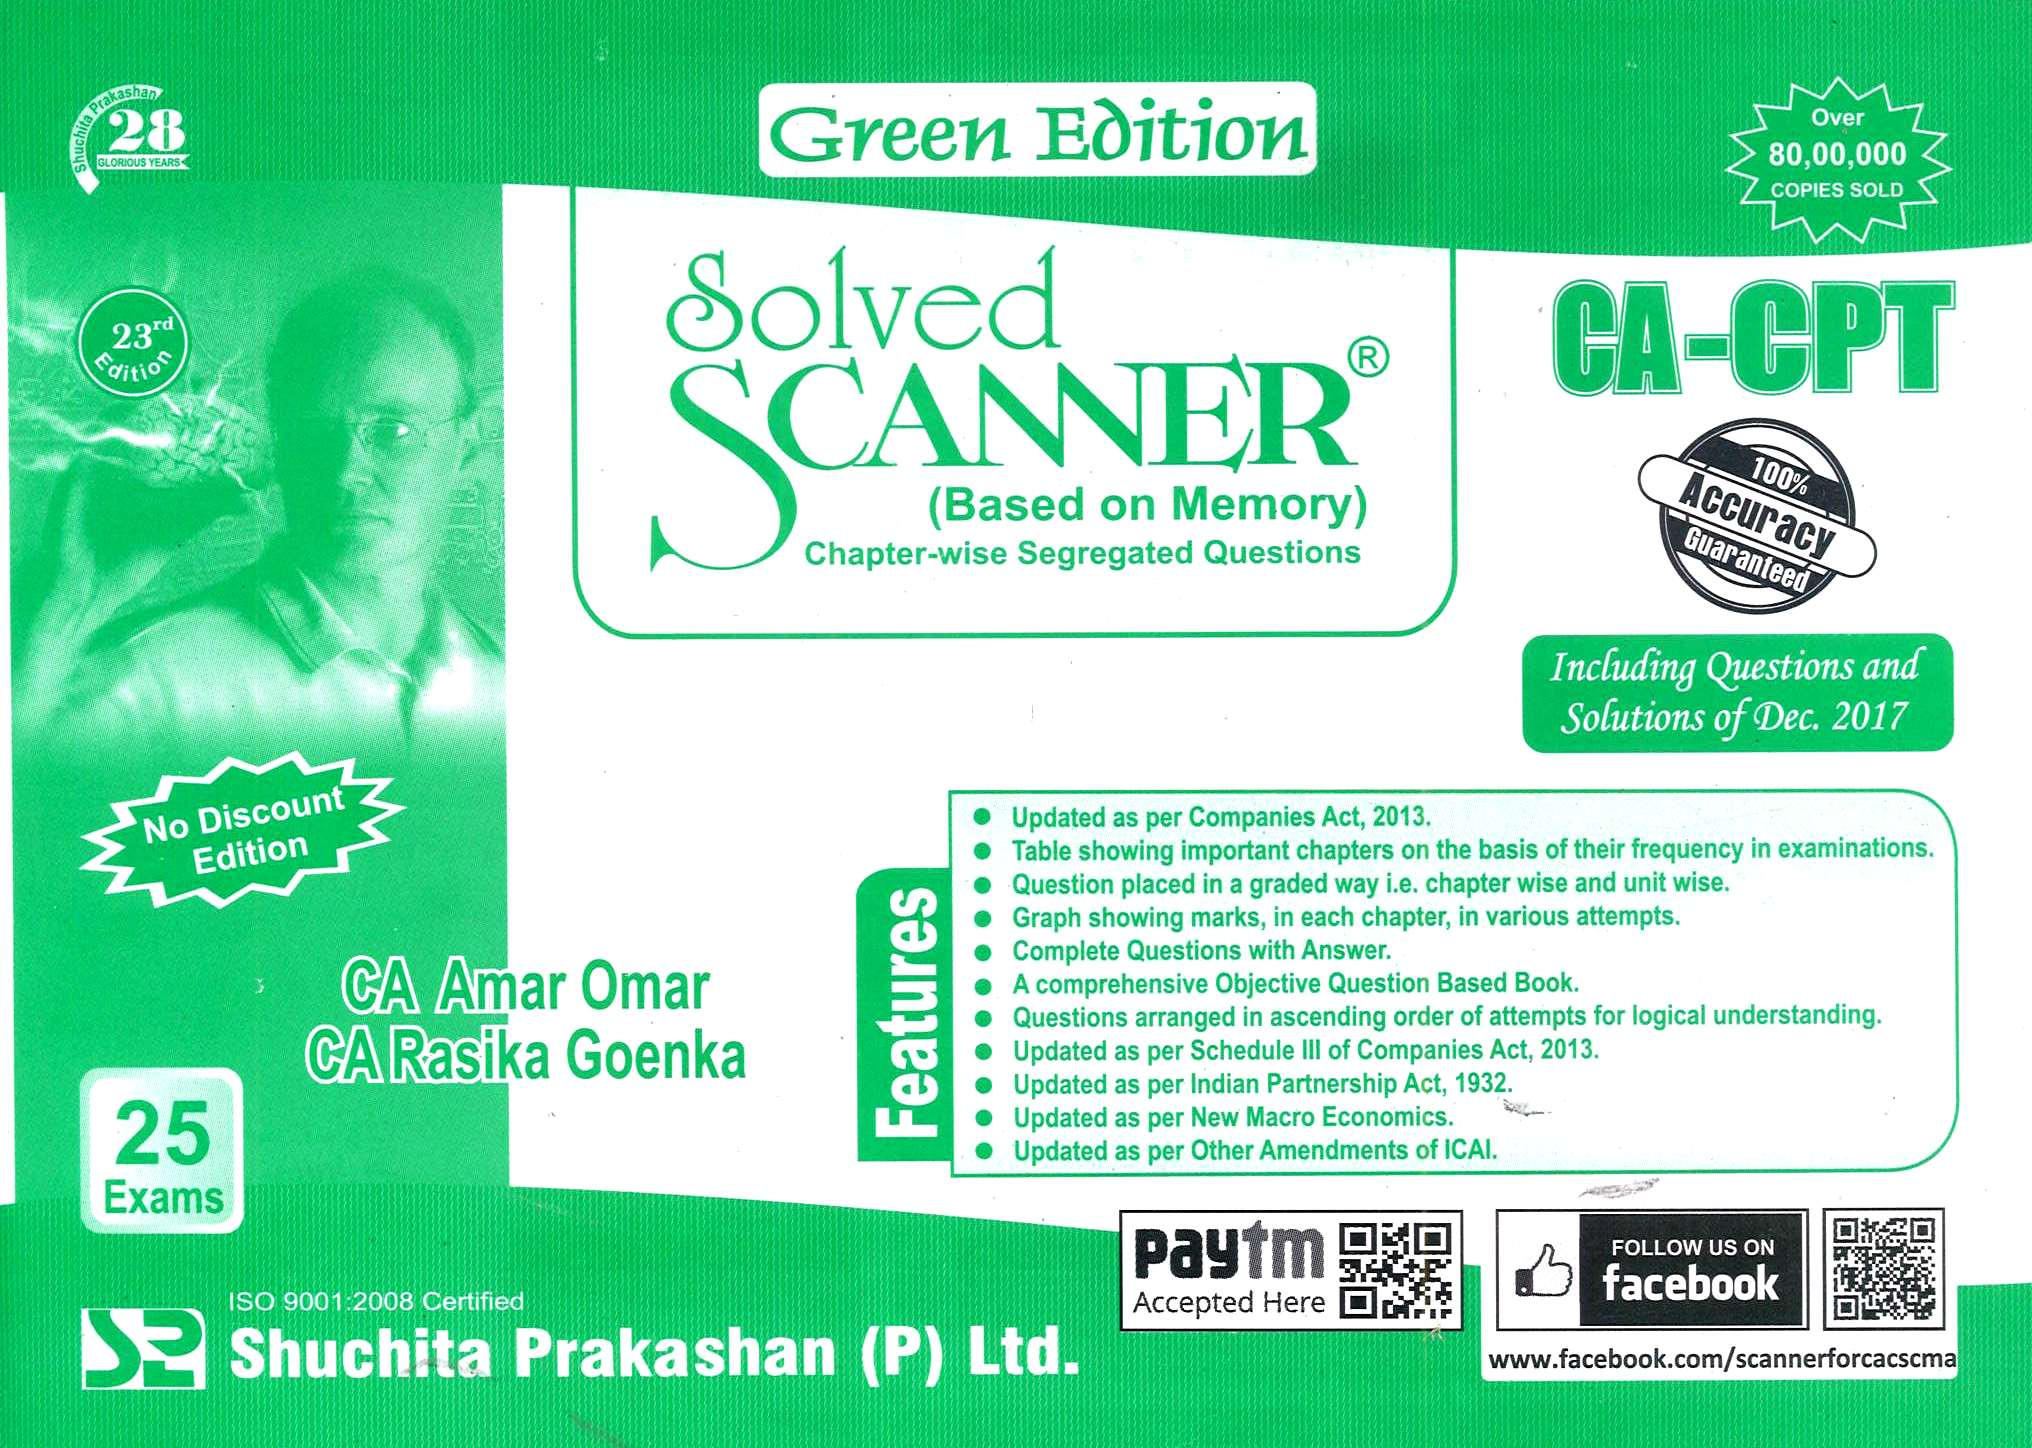 Shuchita CA-CPT Solved Scanner – Based on Memory (Chapter-wise Segregated Questions ) By CA Amar Omar and CA Rasika Goenka Applicable for June 2018 Exam